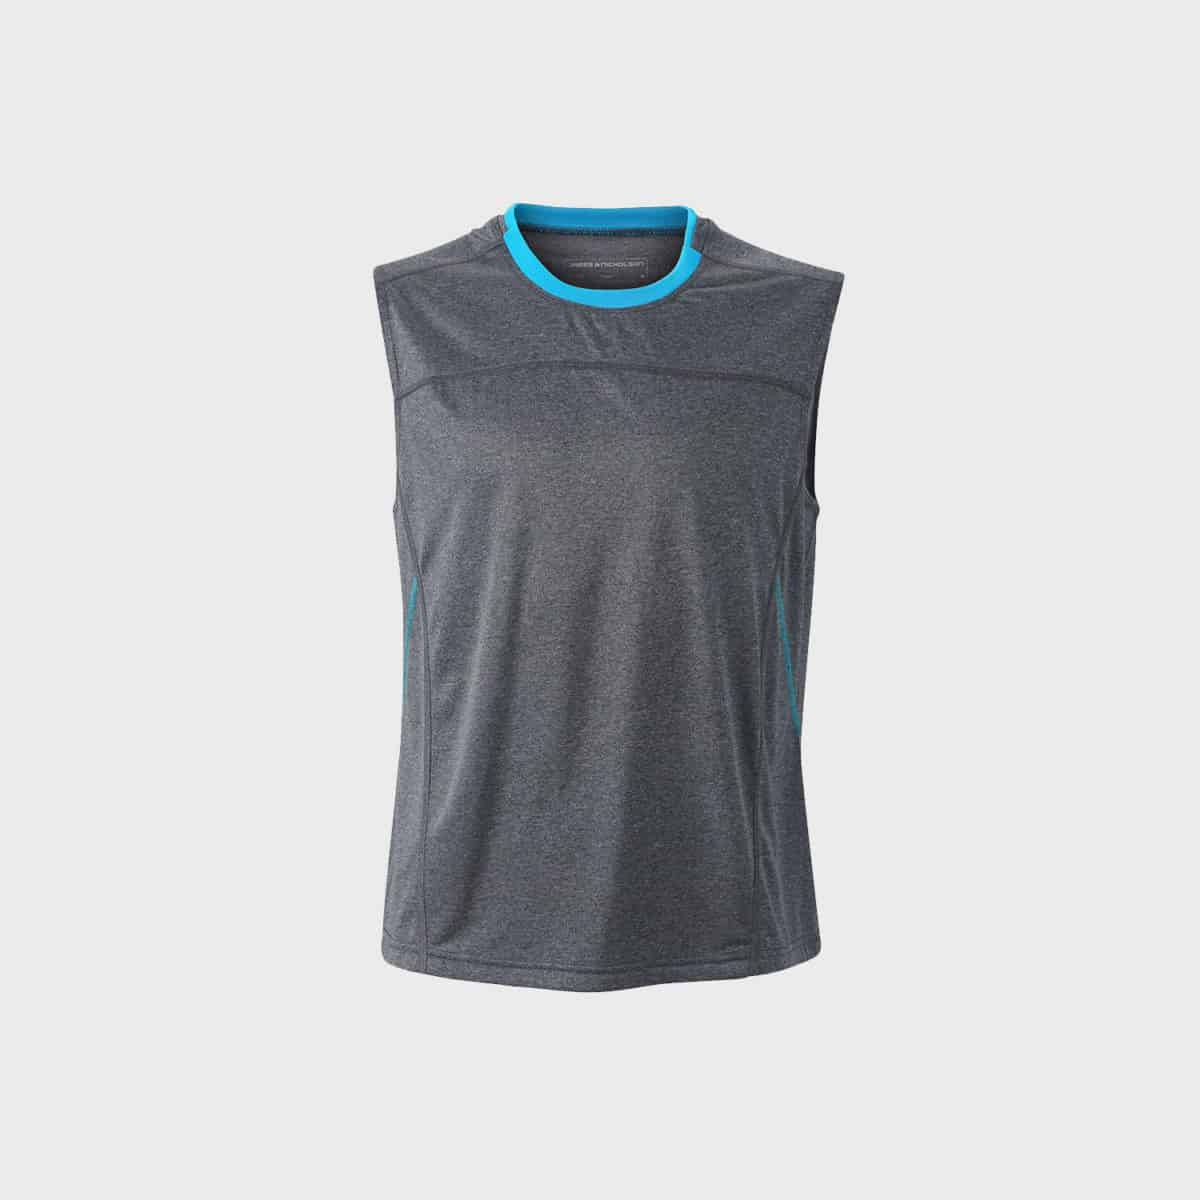 running-tank-top-herren-black-melange-atlantic-kaufen-besticken_stickmanufaktur